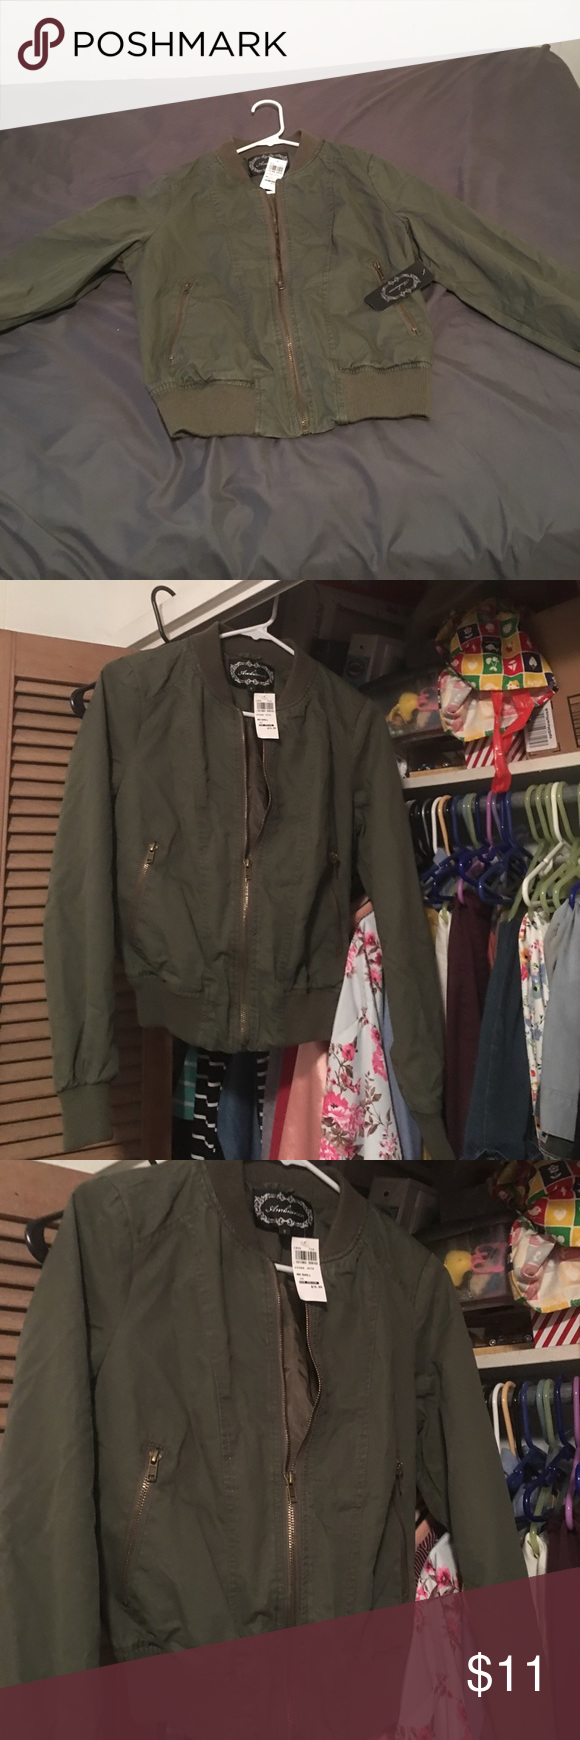 Women S Junior S Size Small Jacket Army Green Women S Junior S Small Jacket Ambiance Jackets Coats Utility Jackets Jackets Women Utility Jacket [ 1740 x 580 Pixel ]